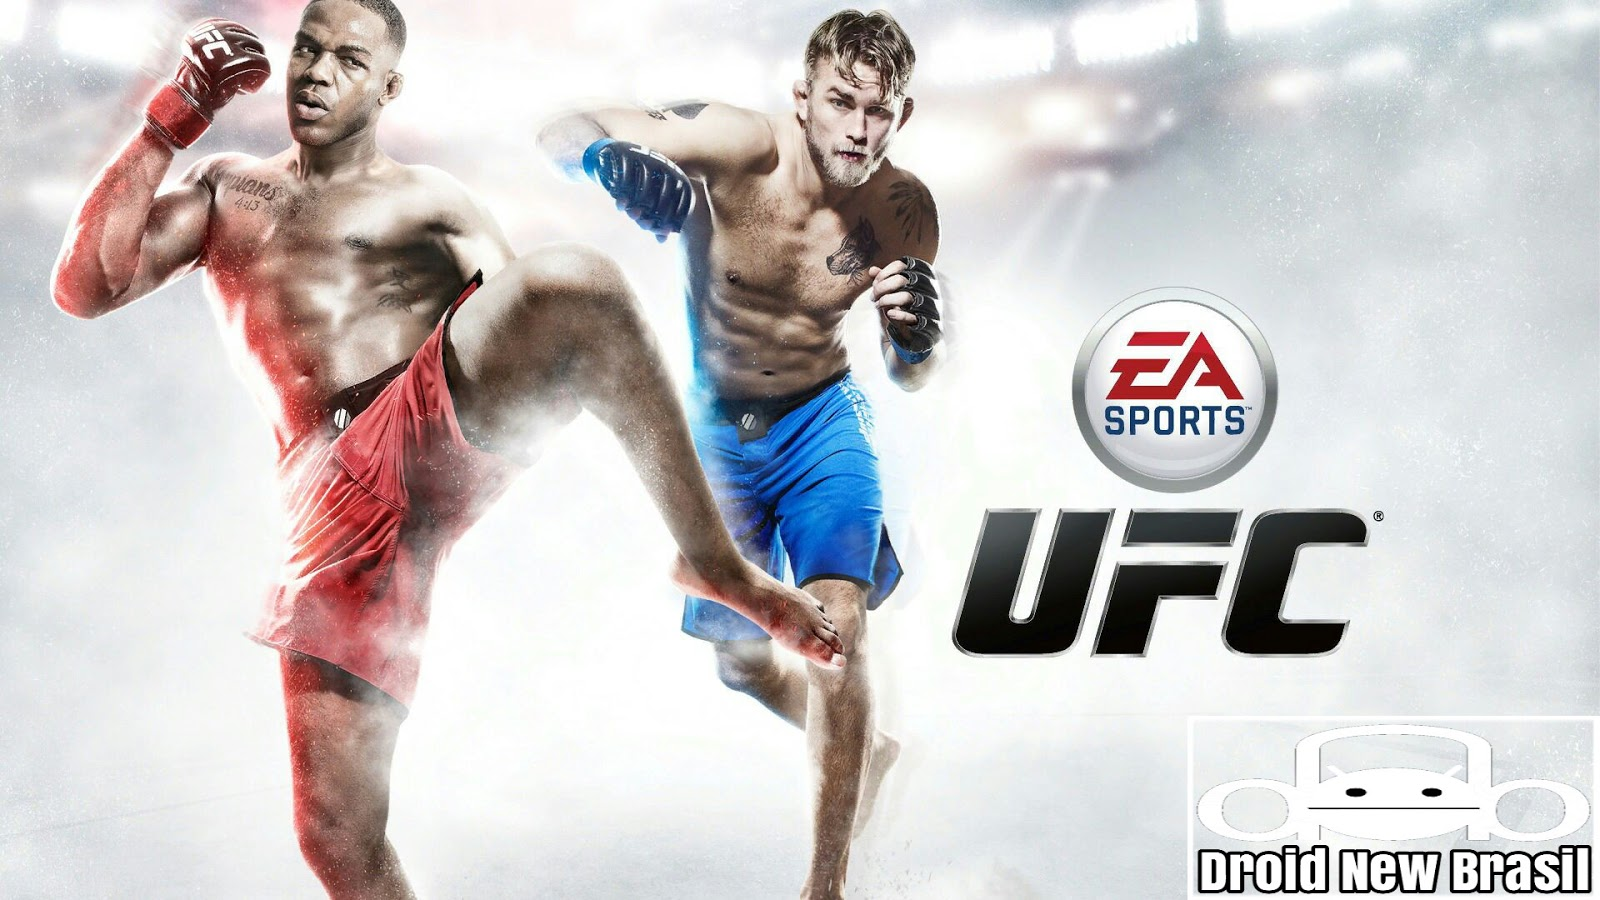 Download EA SPORTS UFC v1.9.3056757 [APK/DATA]